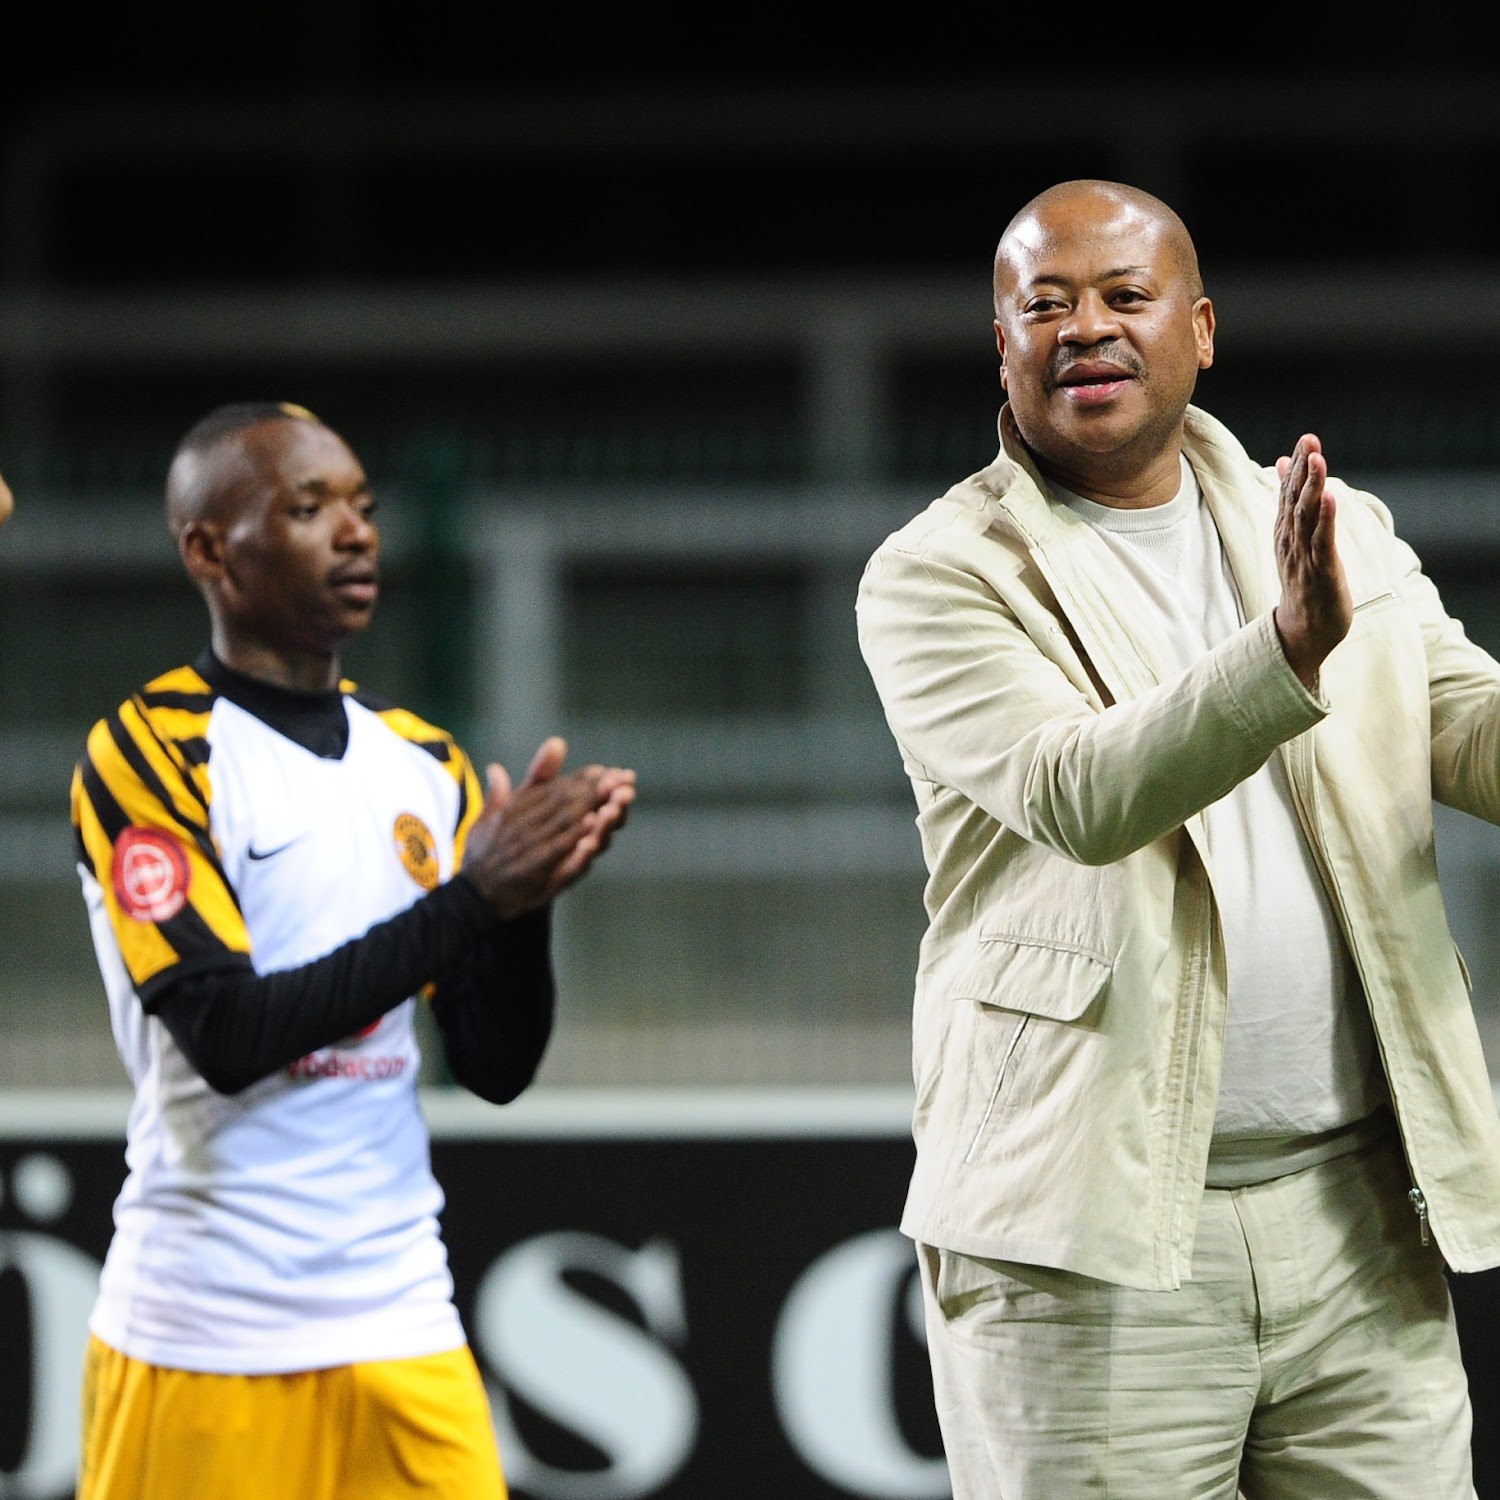 Kaizer chiefs players singing igwijo. Bobby Motaung Sings Kaizer Chiefs Supporters Praises